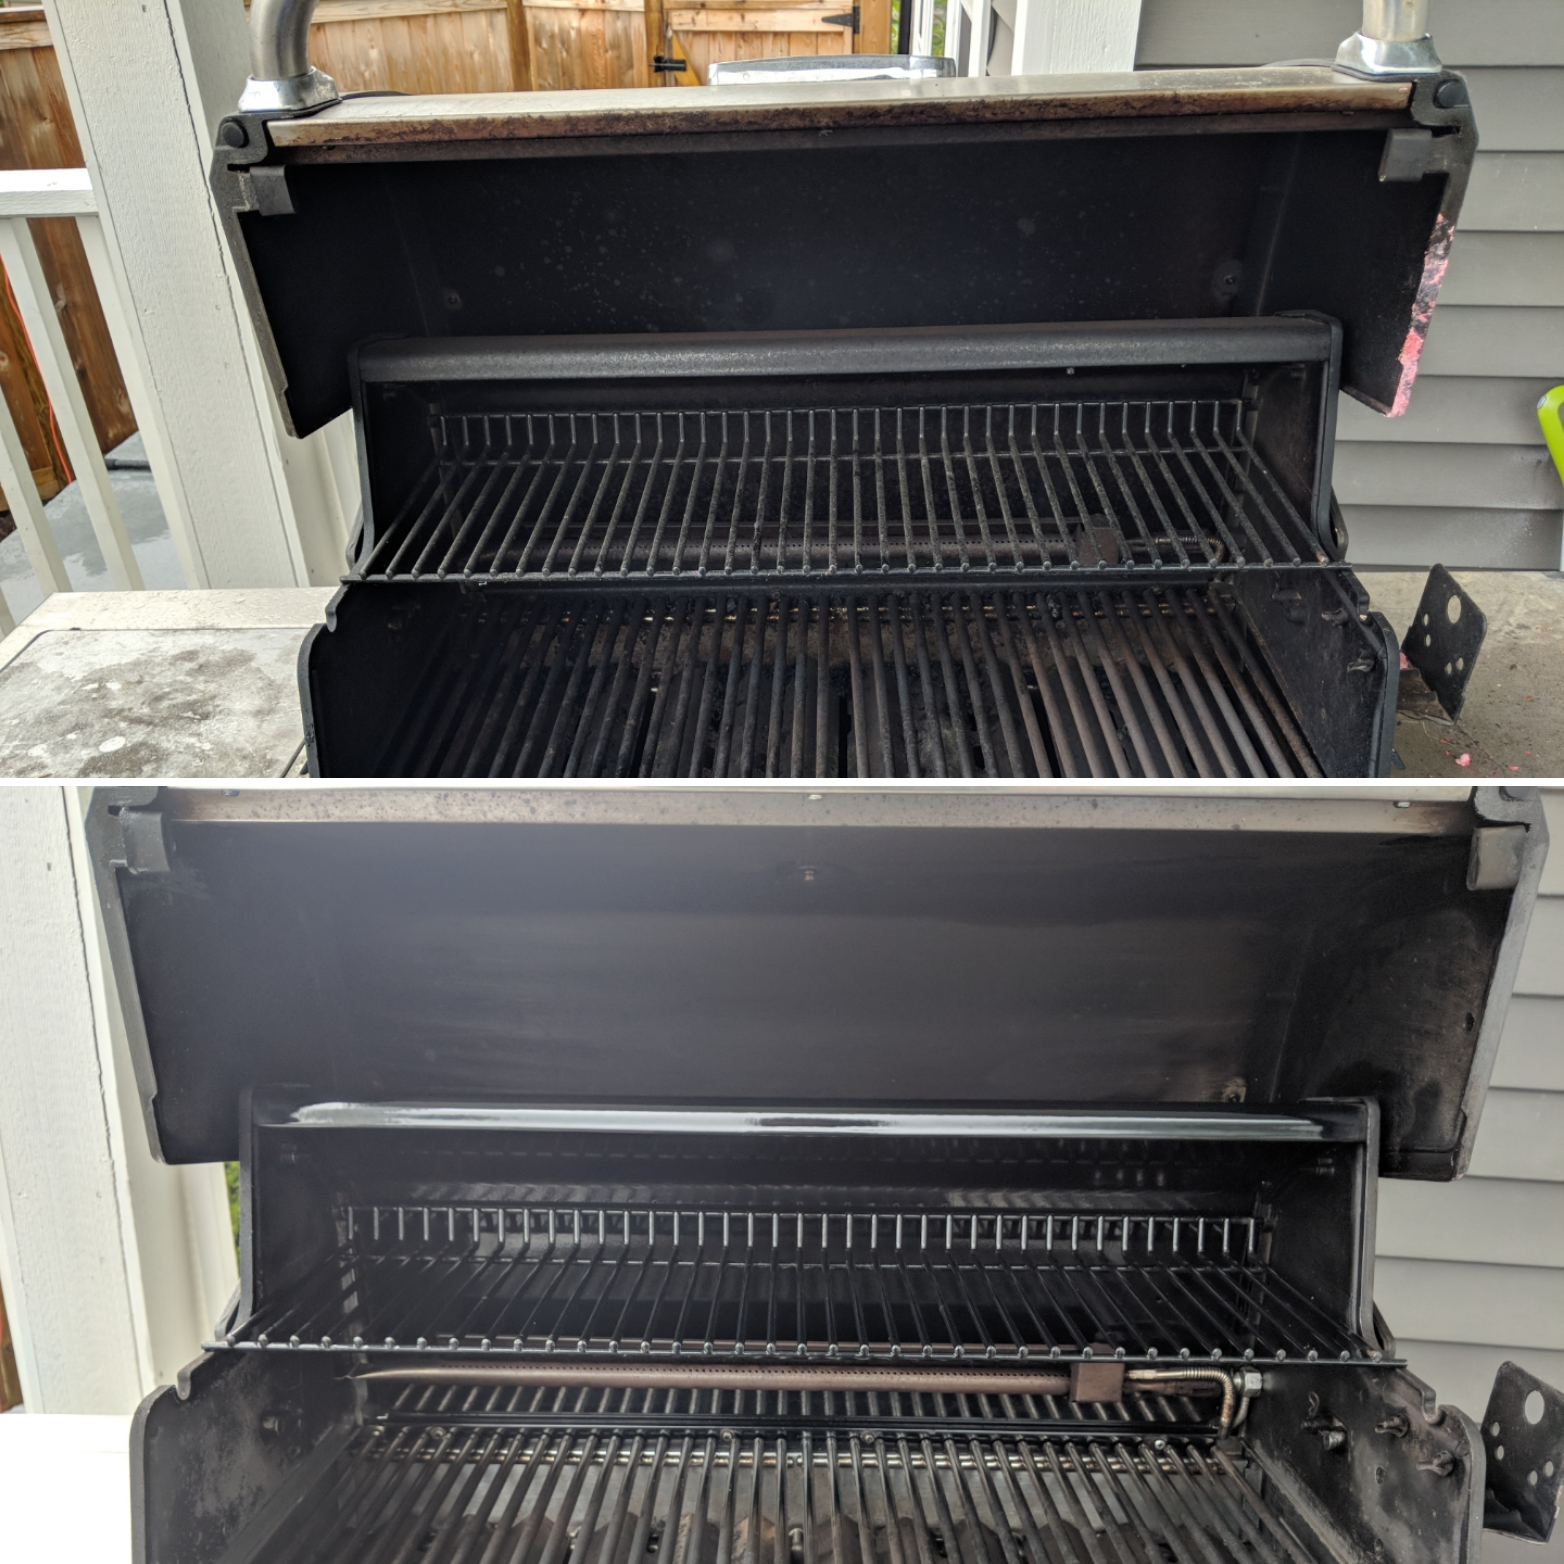 Before and After Grill Cleaning Services